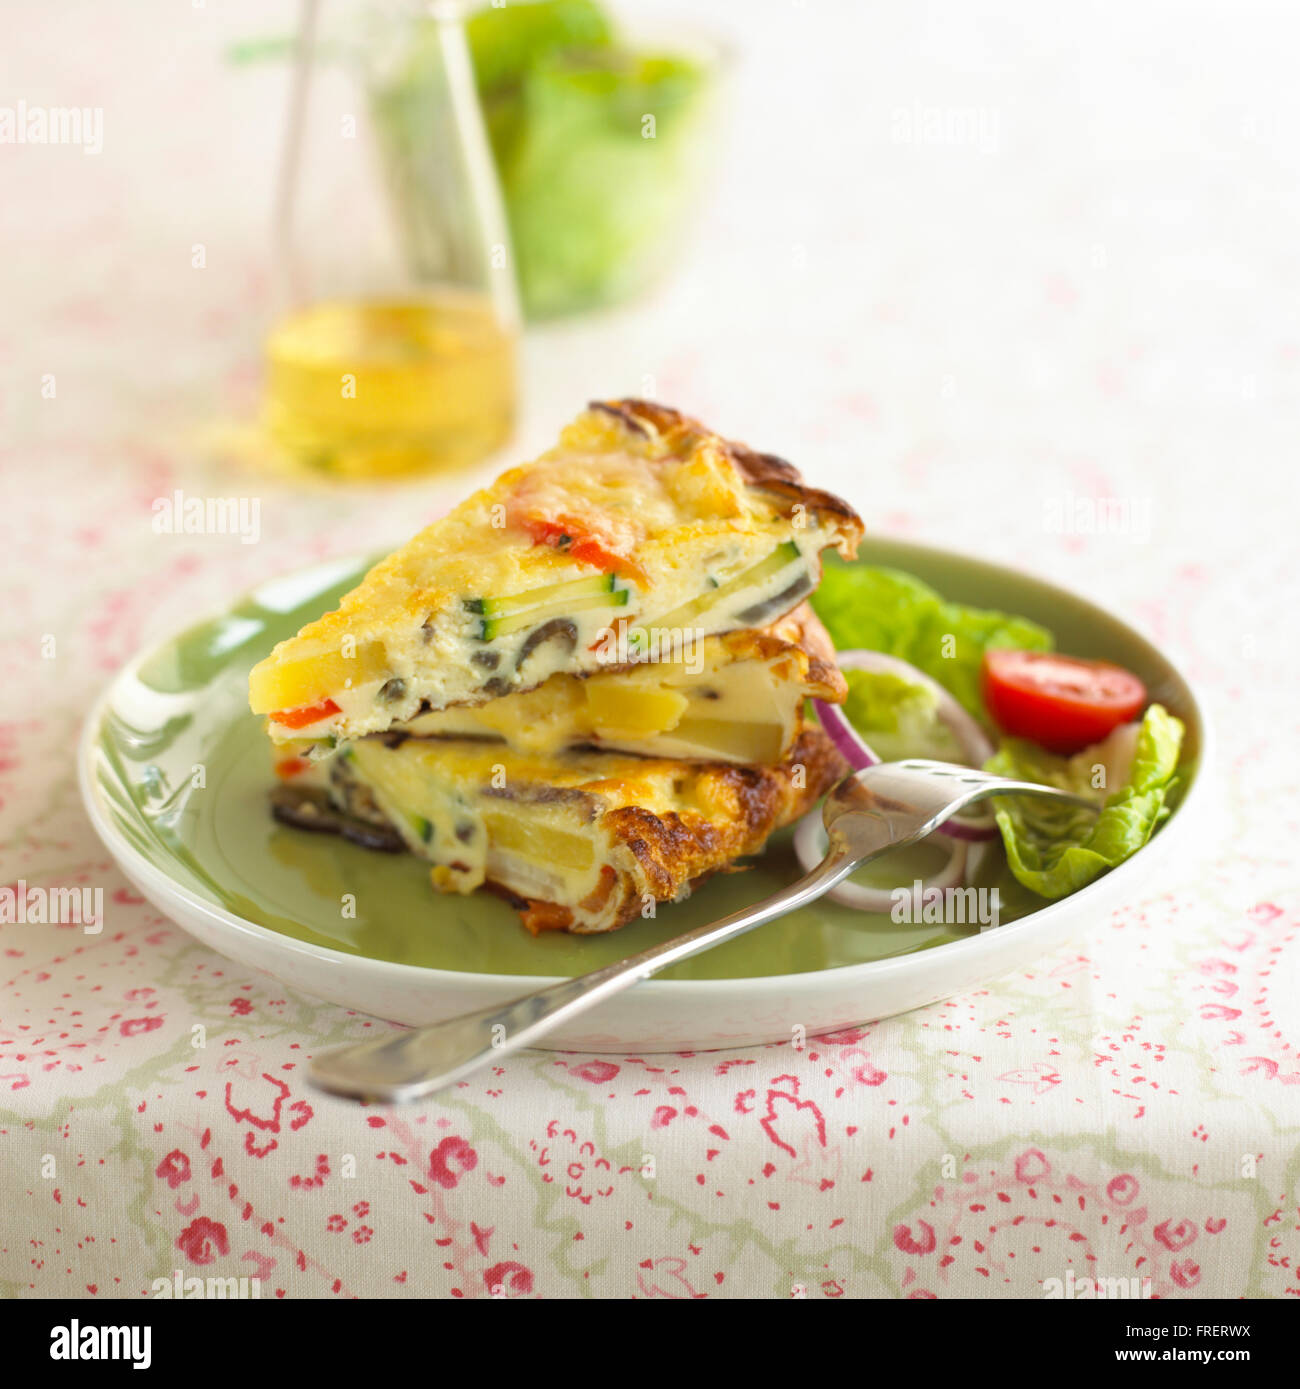 Frittata provencale, three wedges of omelette containing vegetables on plate with side salad and fork - Stock Image